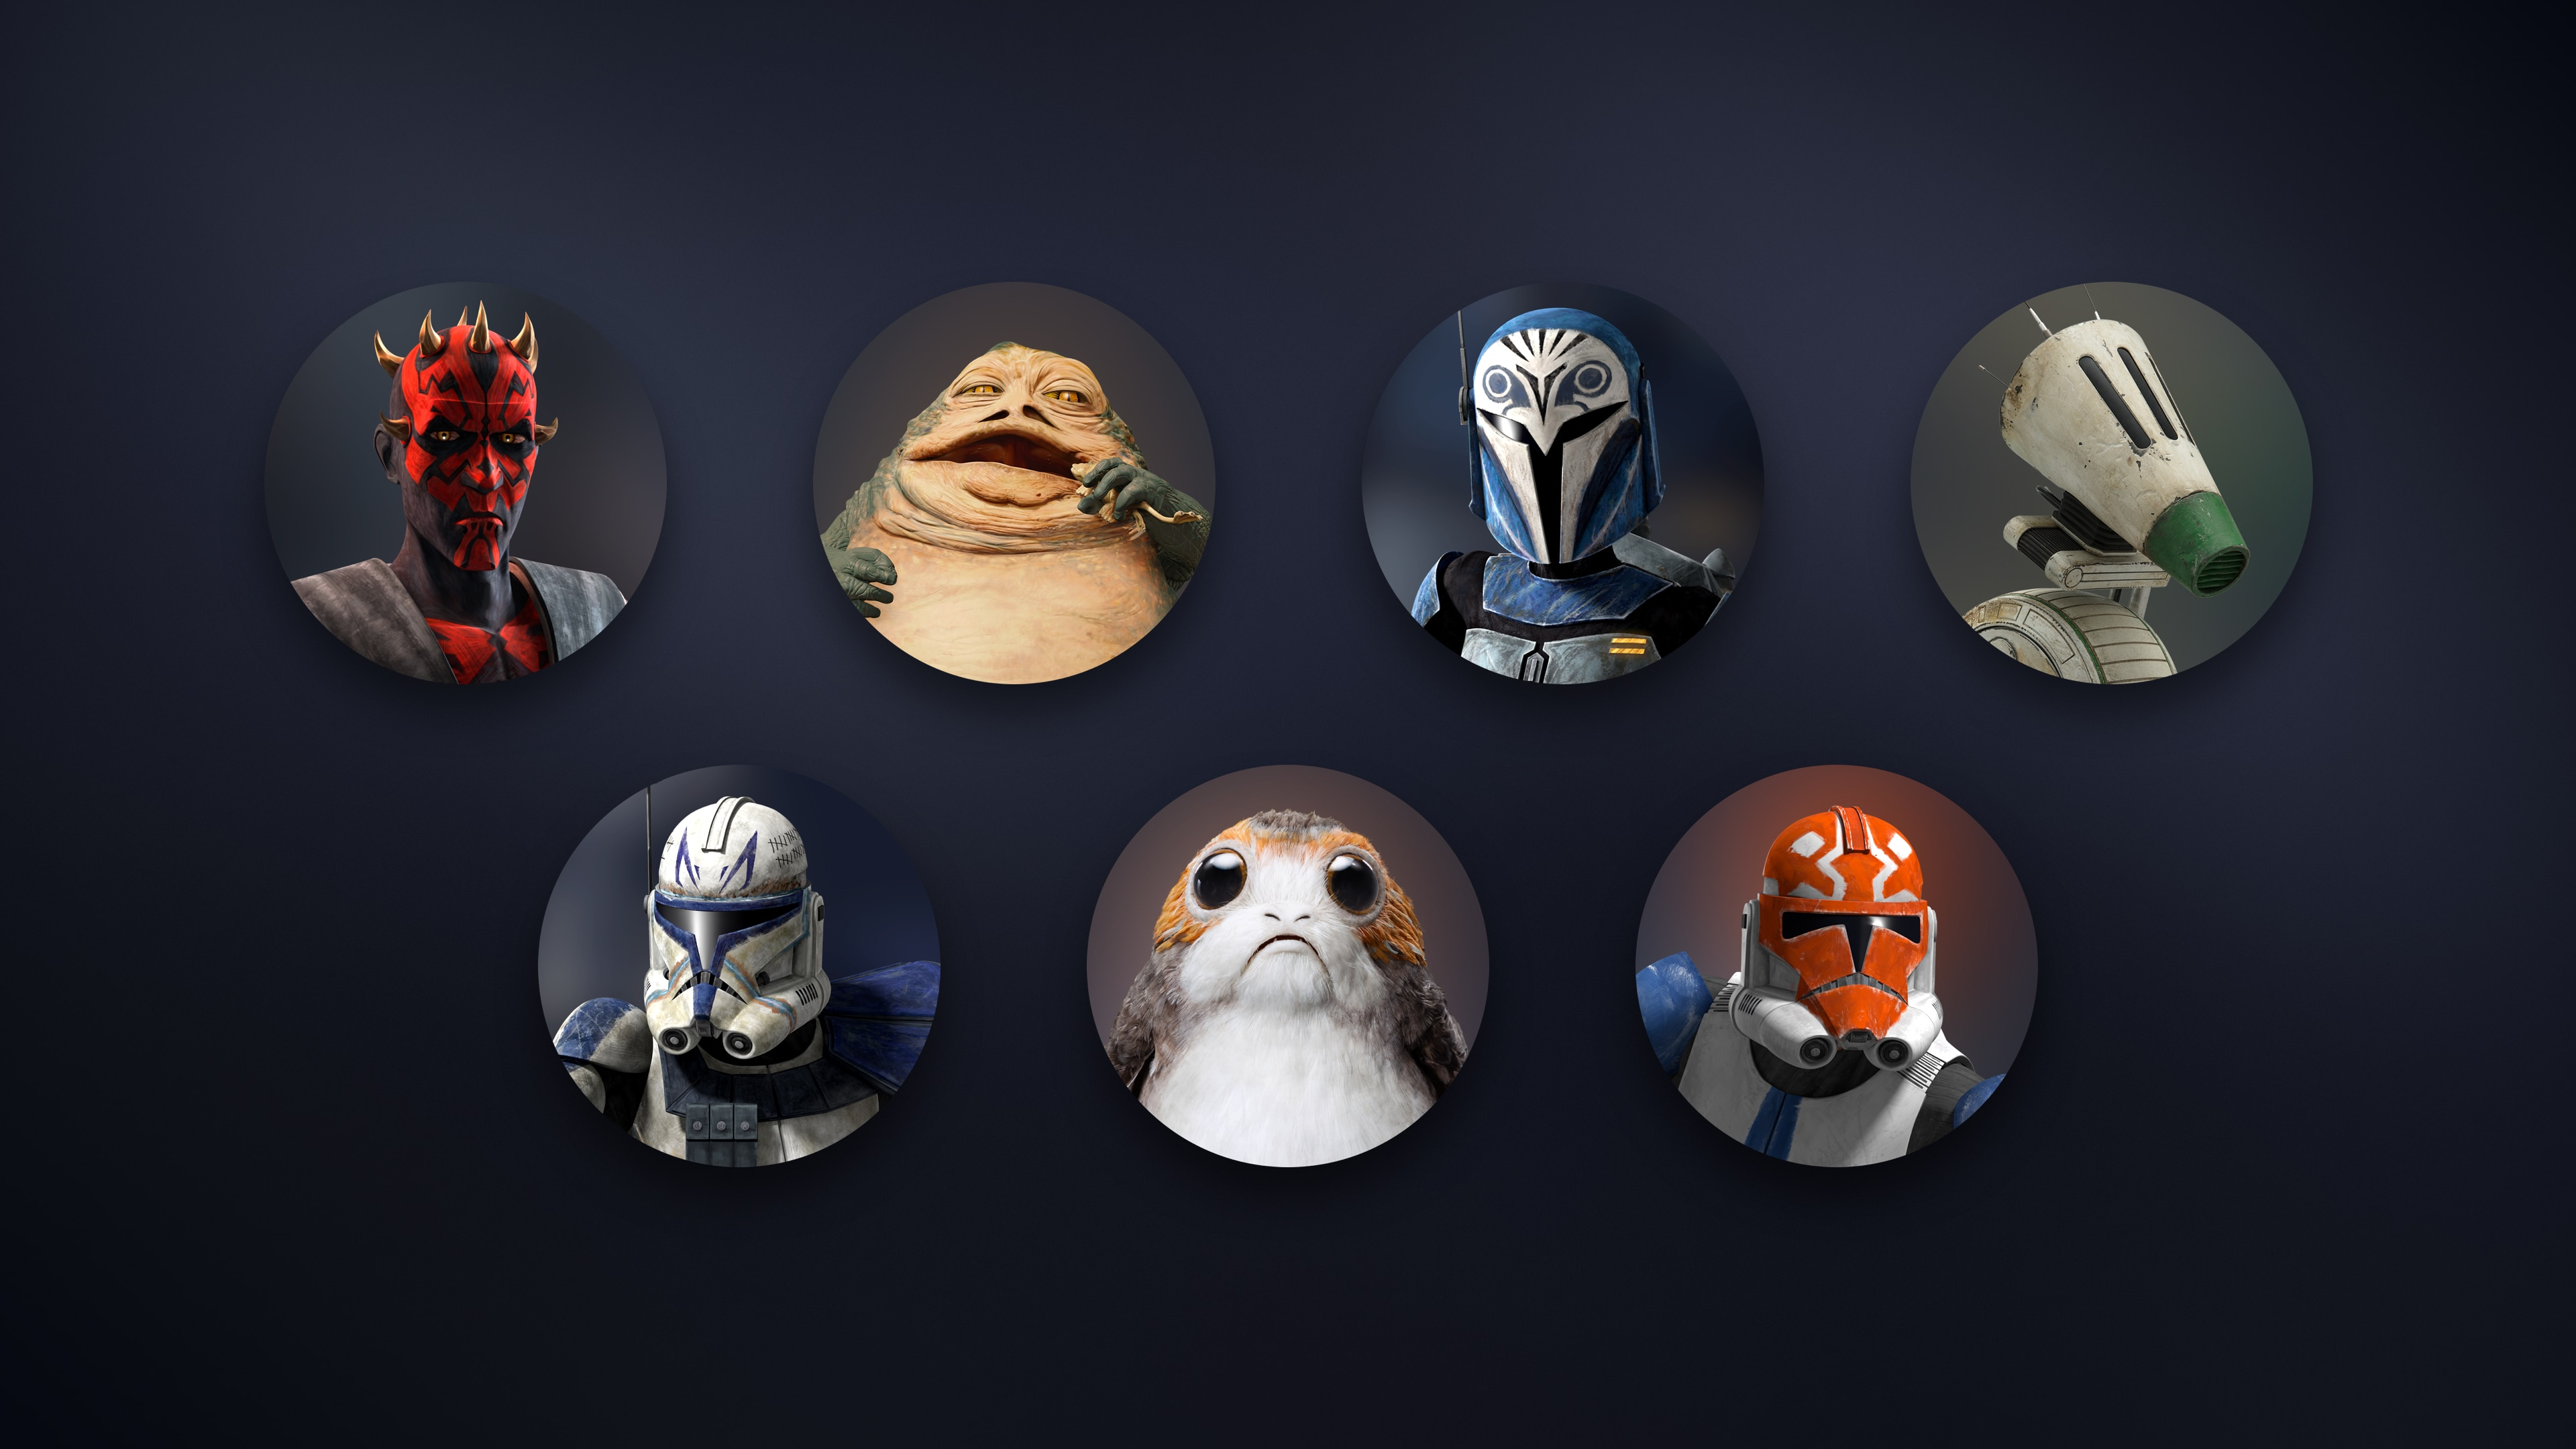 New Star Wars Avatars Available on Disney+